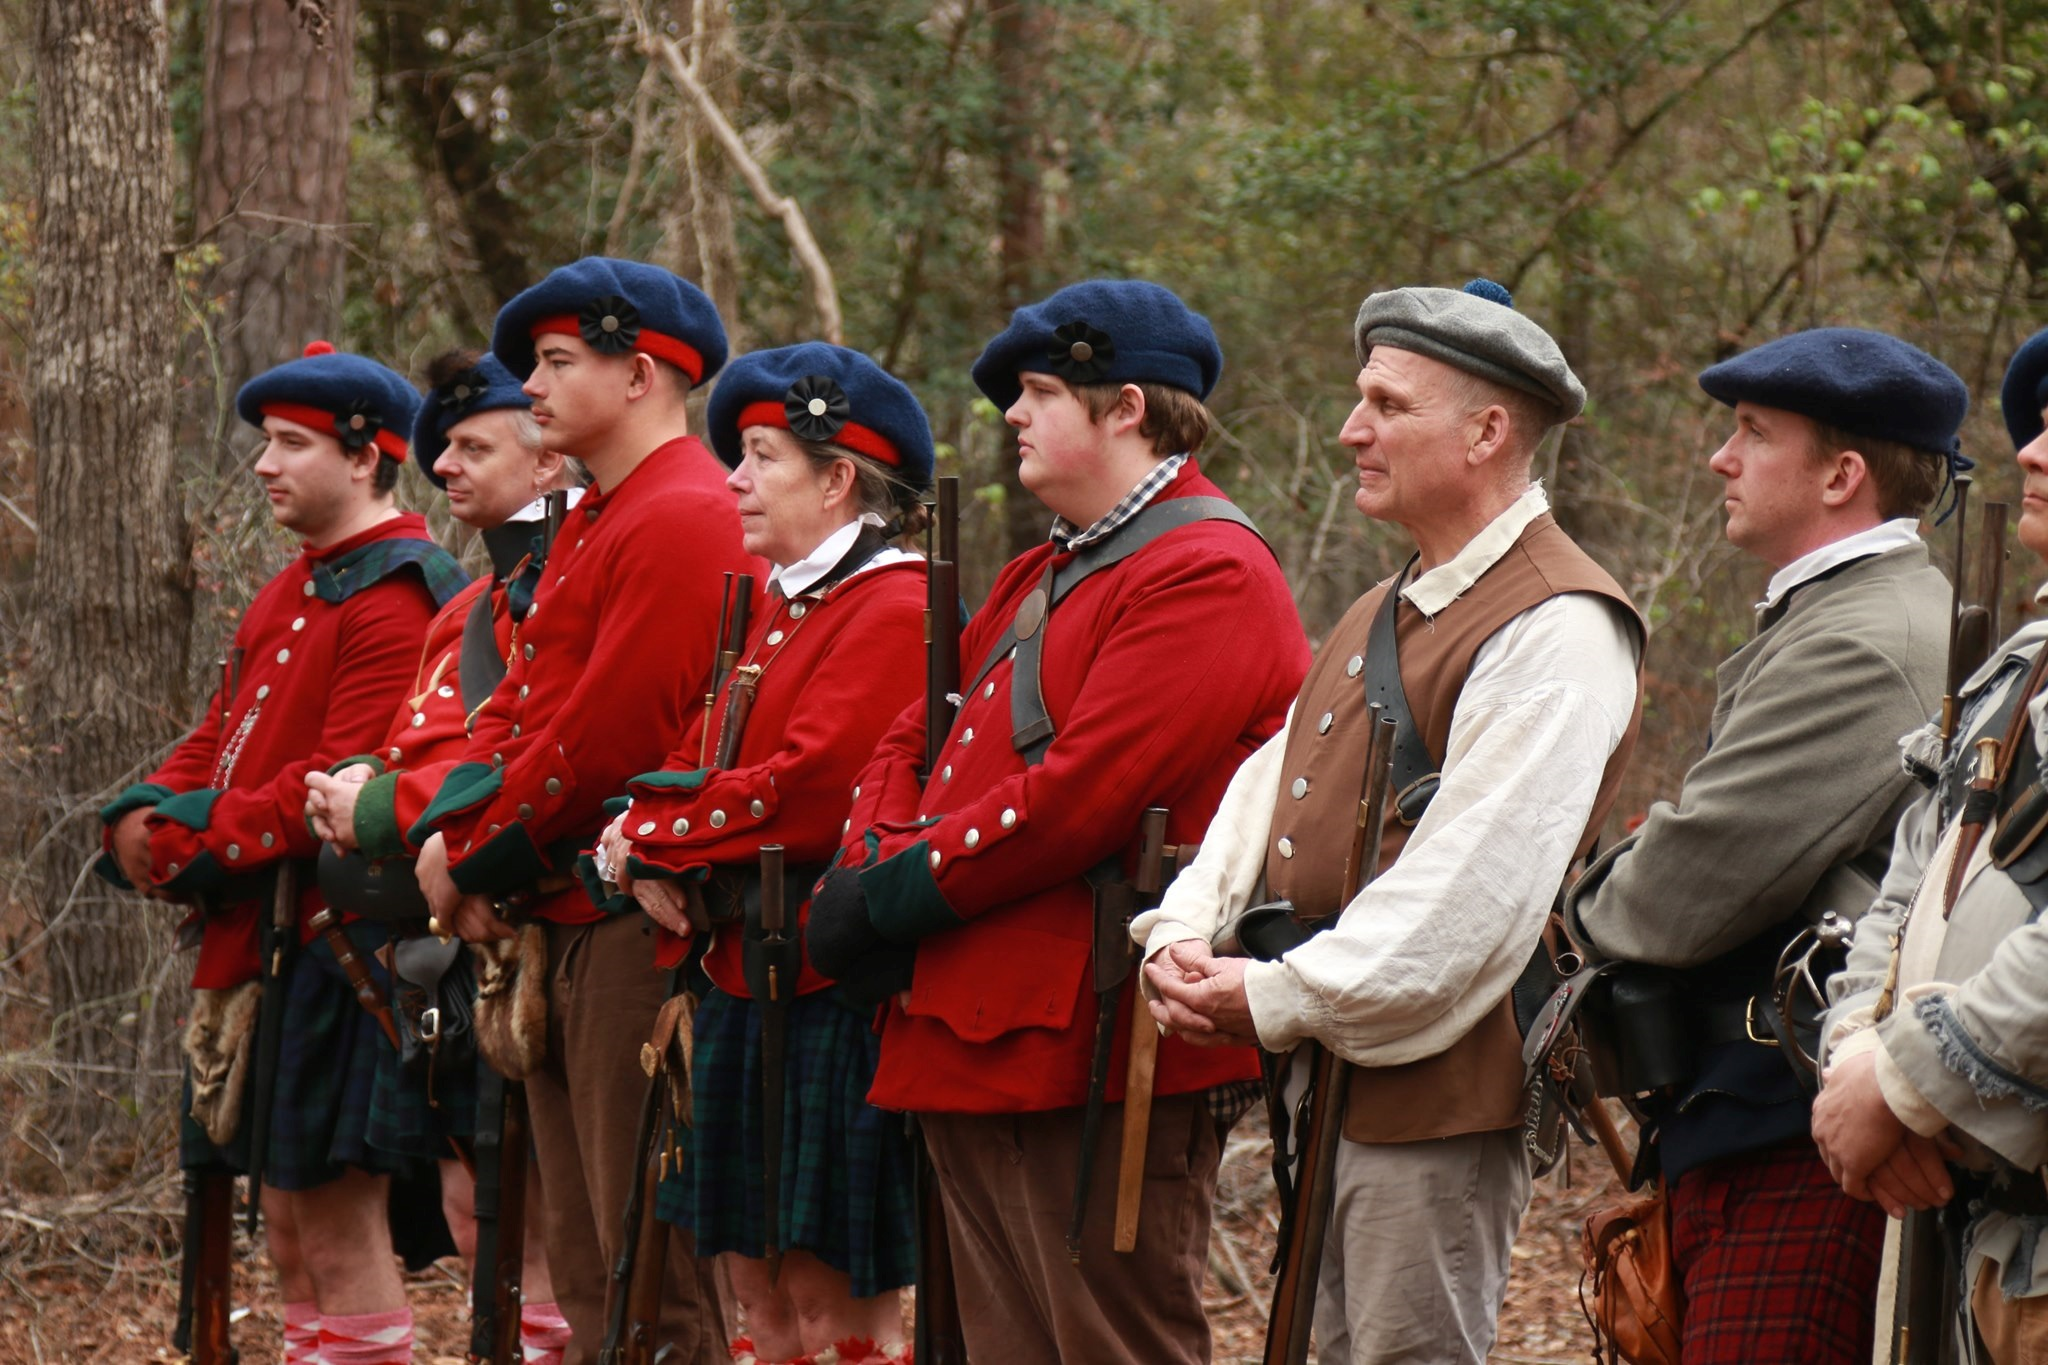 2nd Annual Scottish Heritage Day